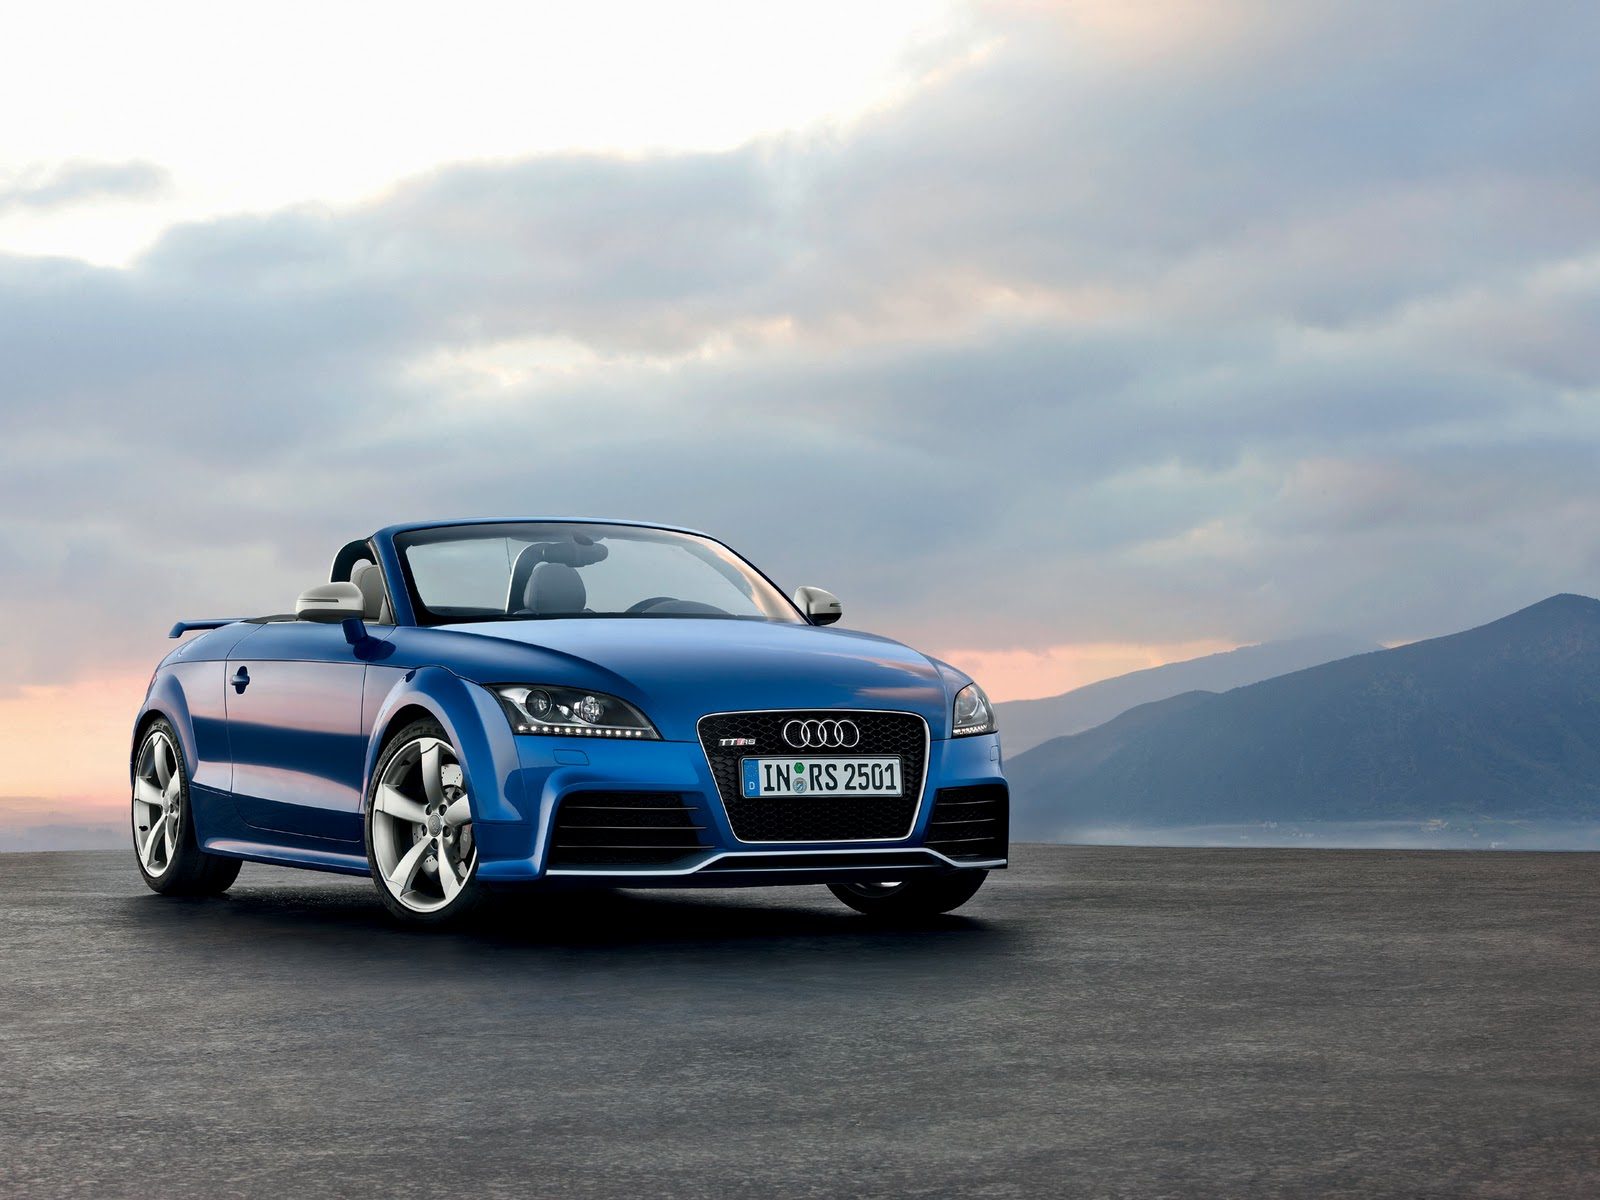 Audi Cars Full HD Wallpapers, Audi Cars Latest Wallpapers ...